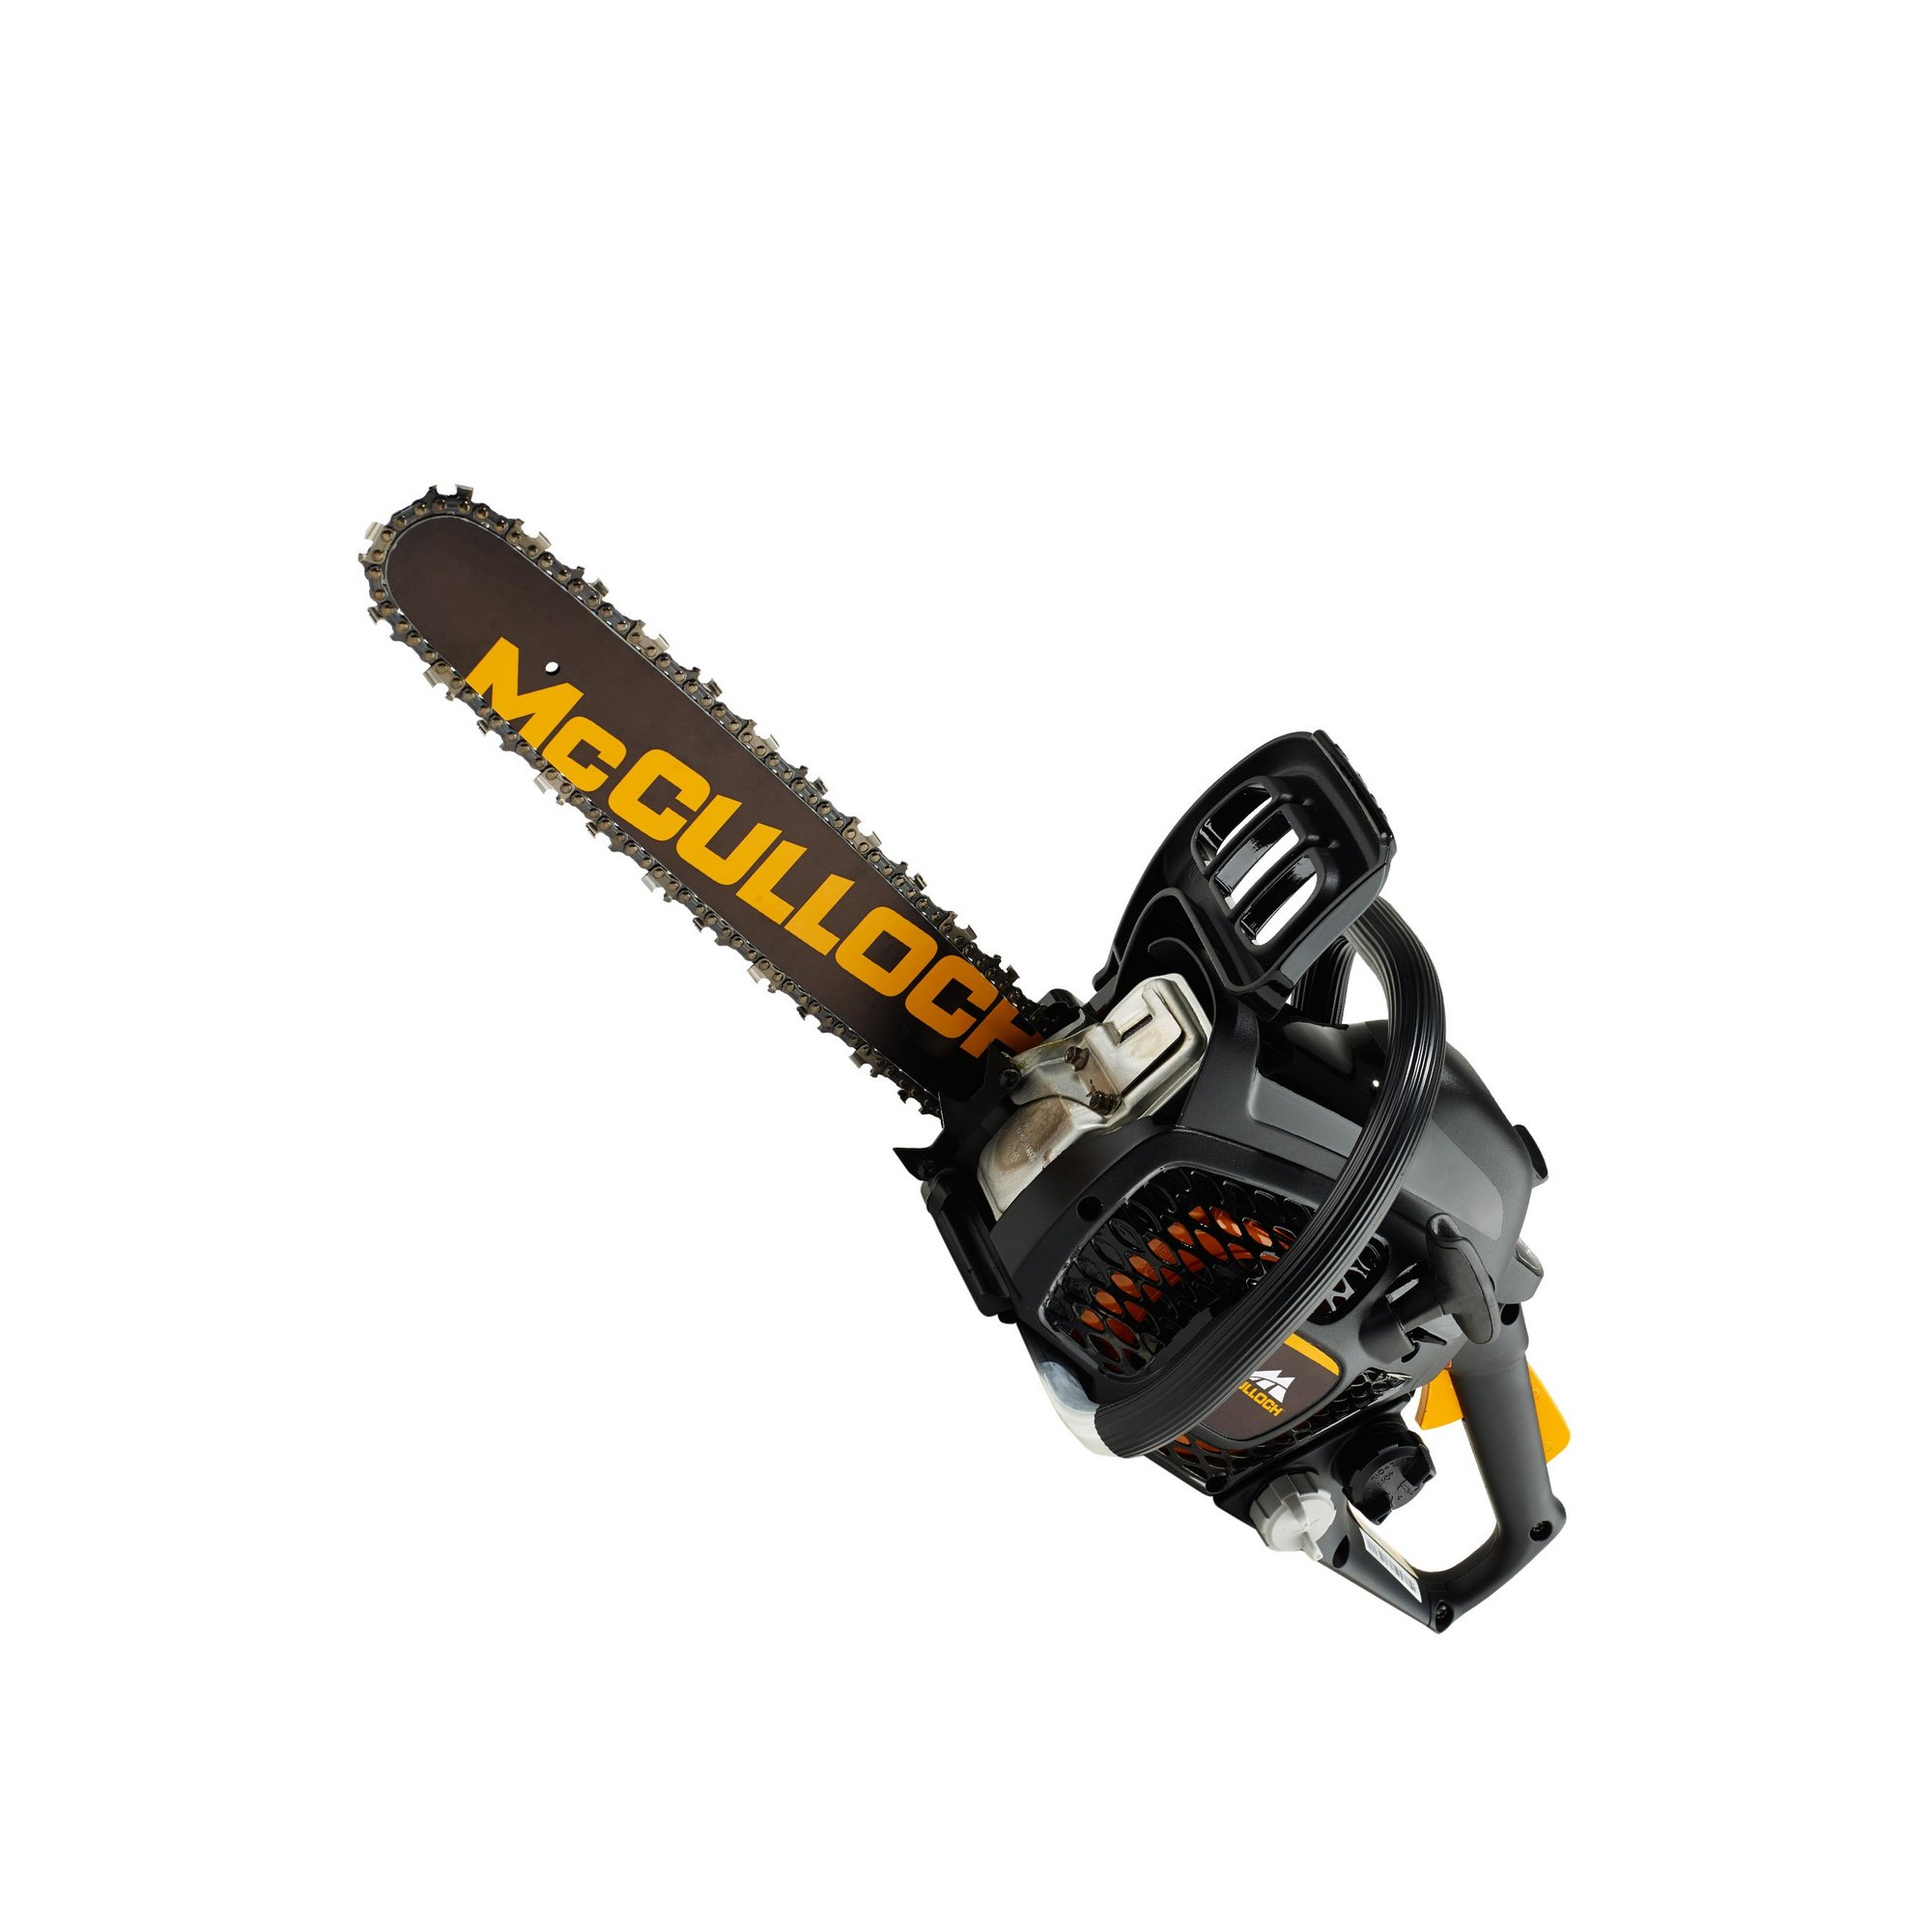 Image of McCulloch CS35 Petrol Chainsaw